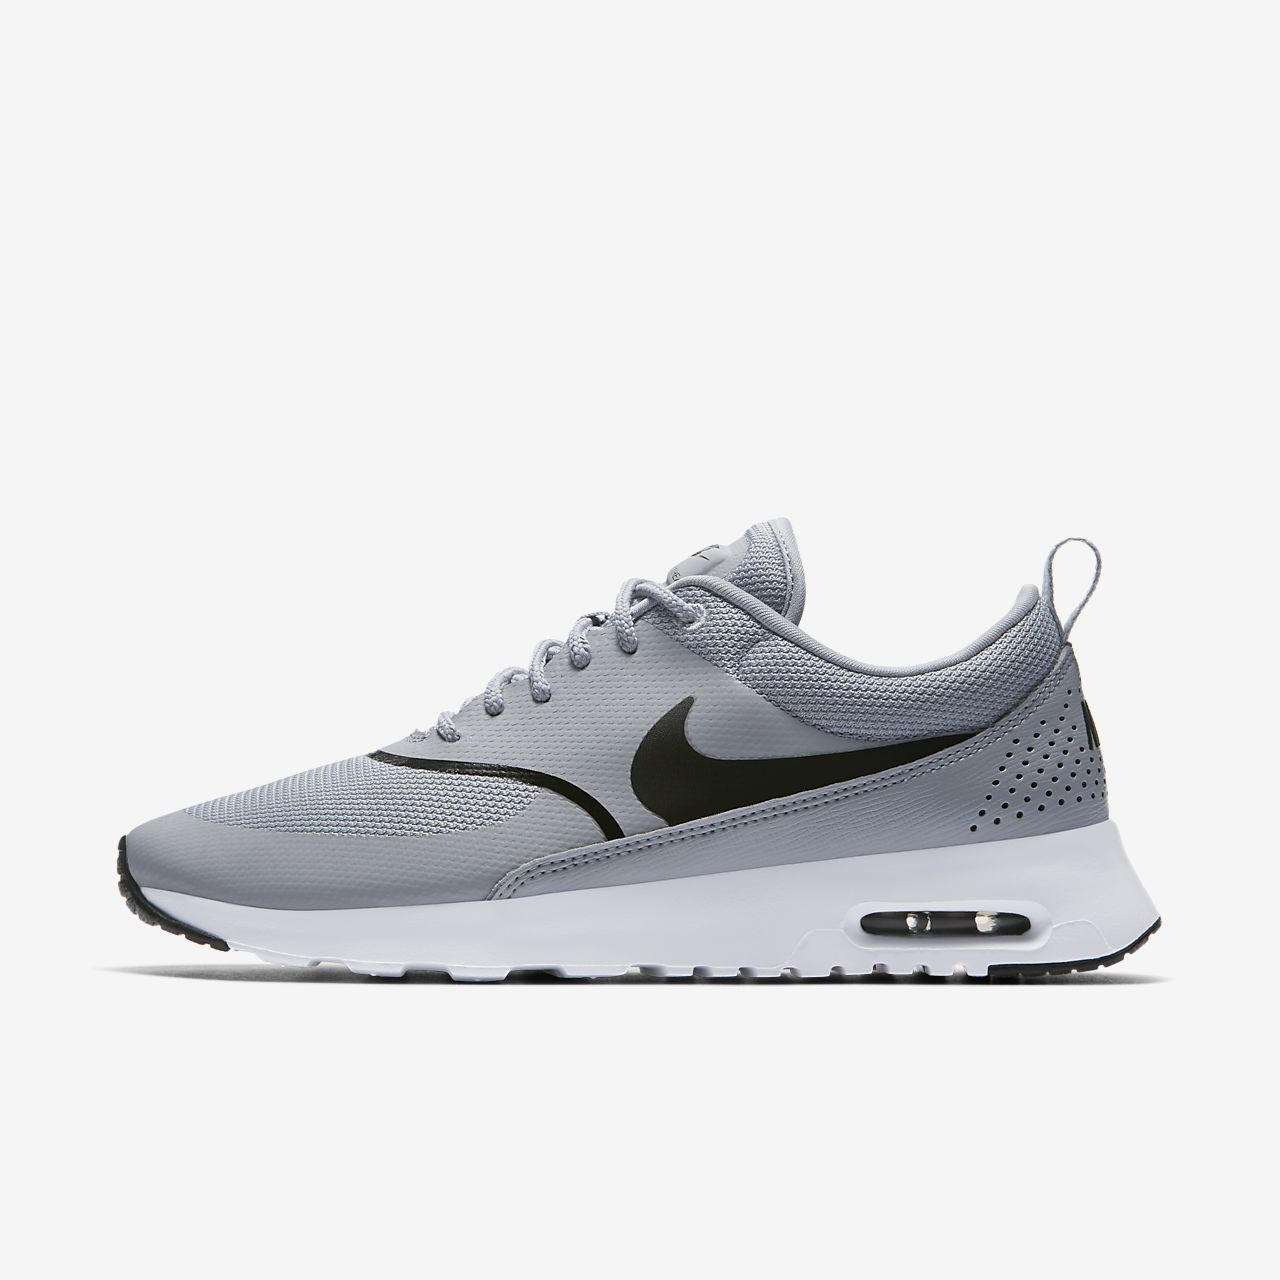 reputable site cc29f 6f976 ... Nike Air Max Thea Women s Shoe